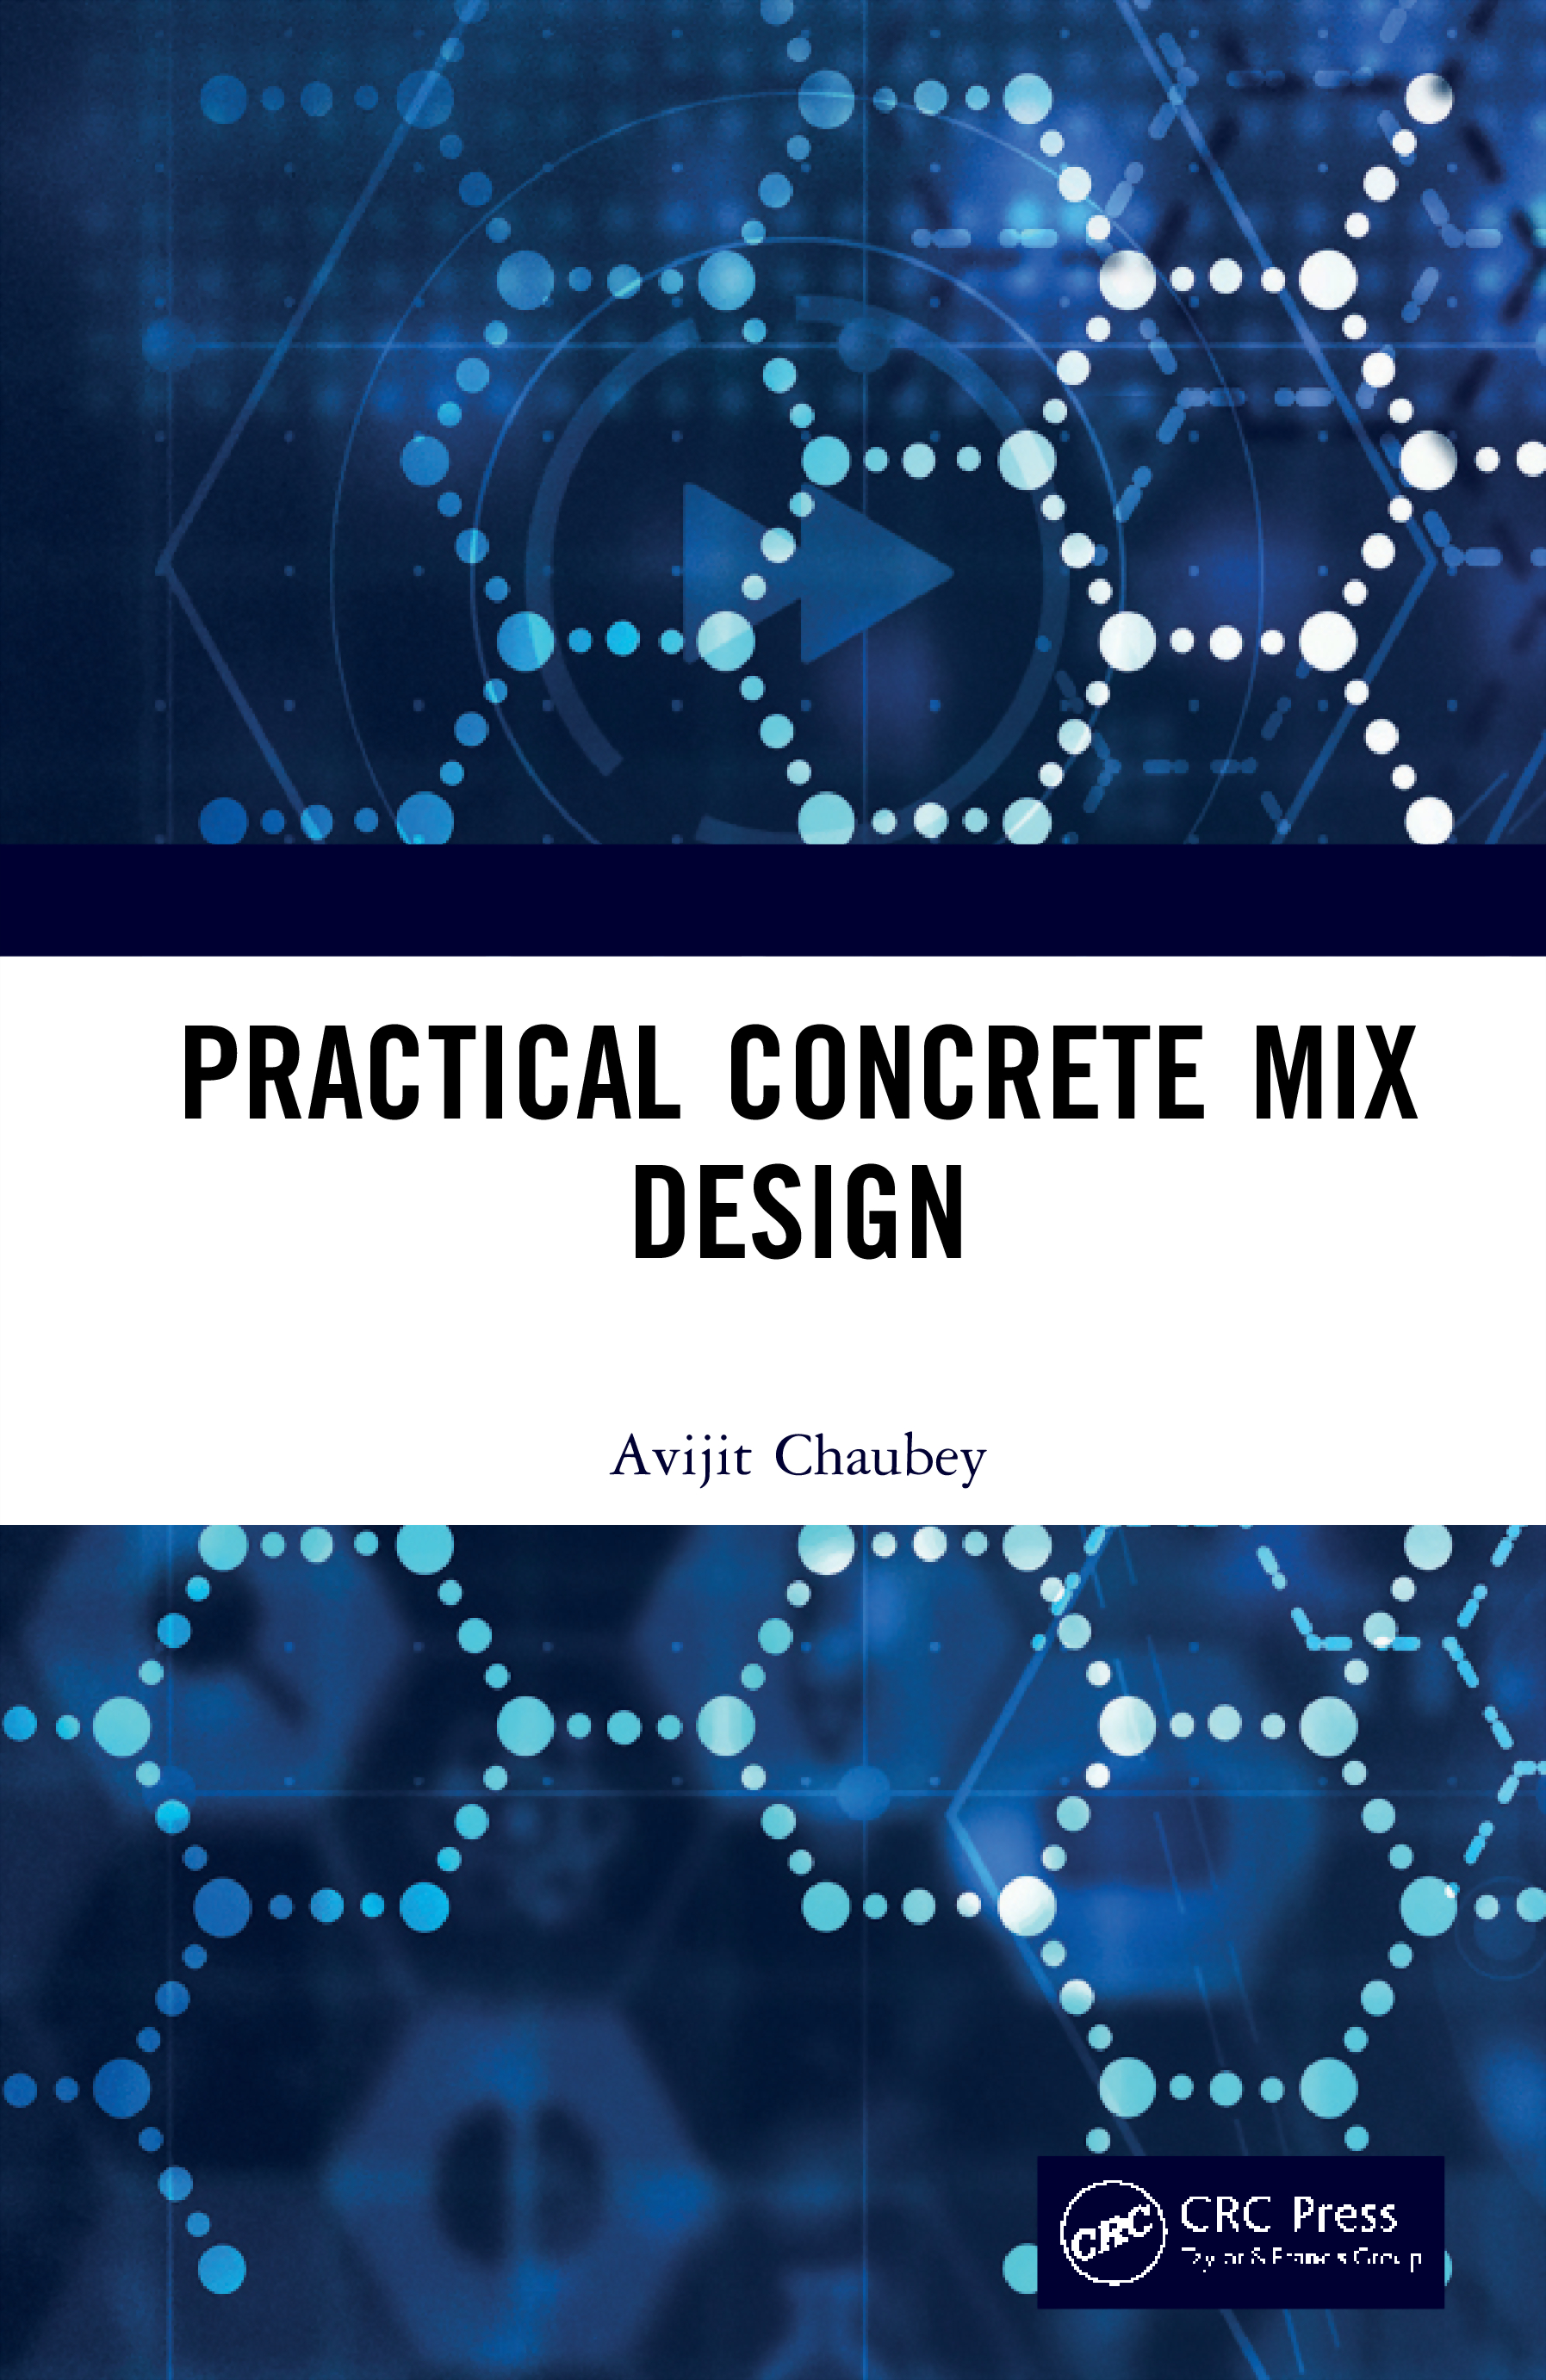 Practical Concrete Mix Design book cover